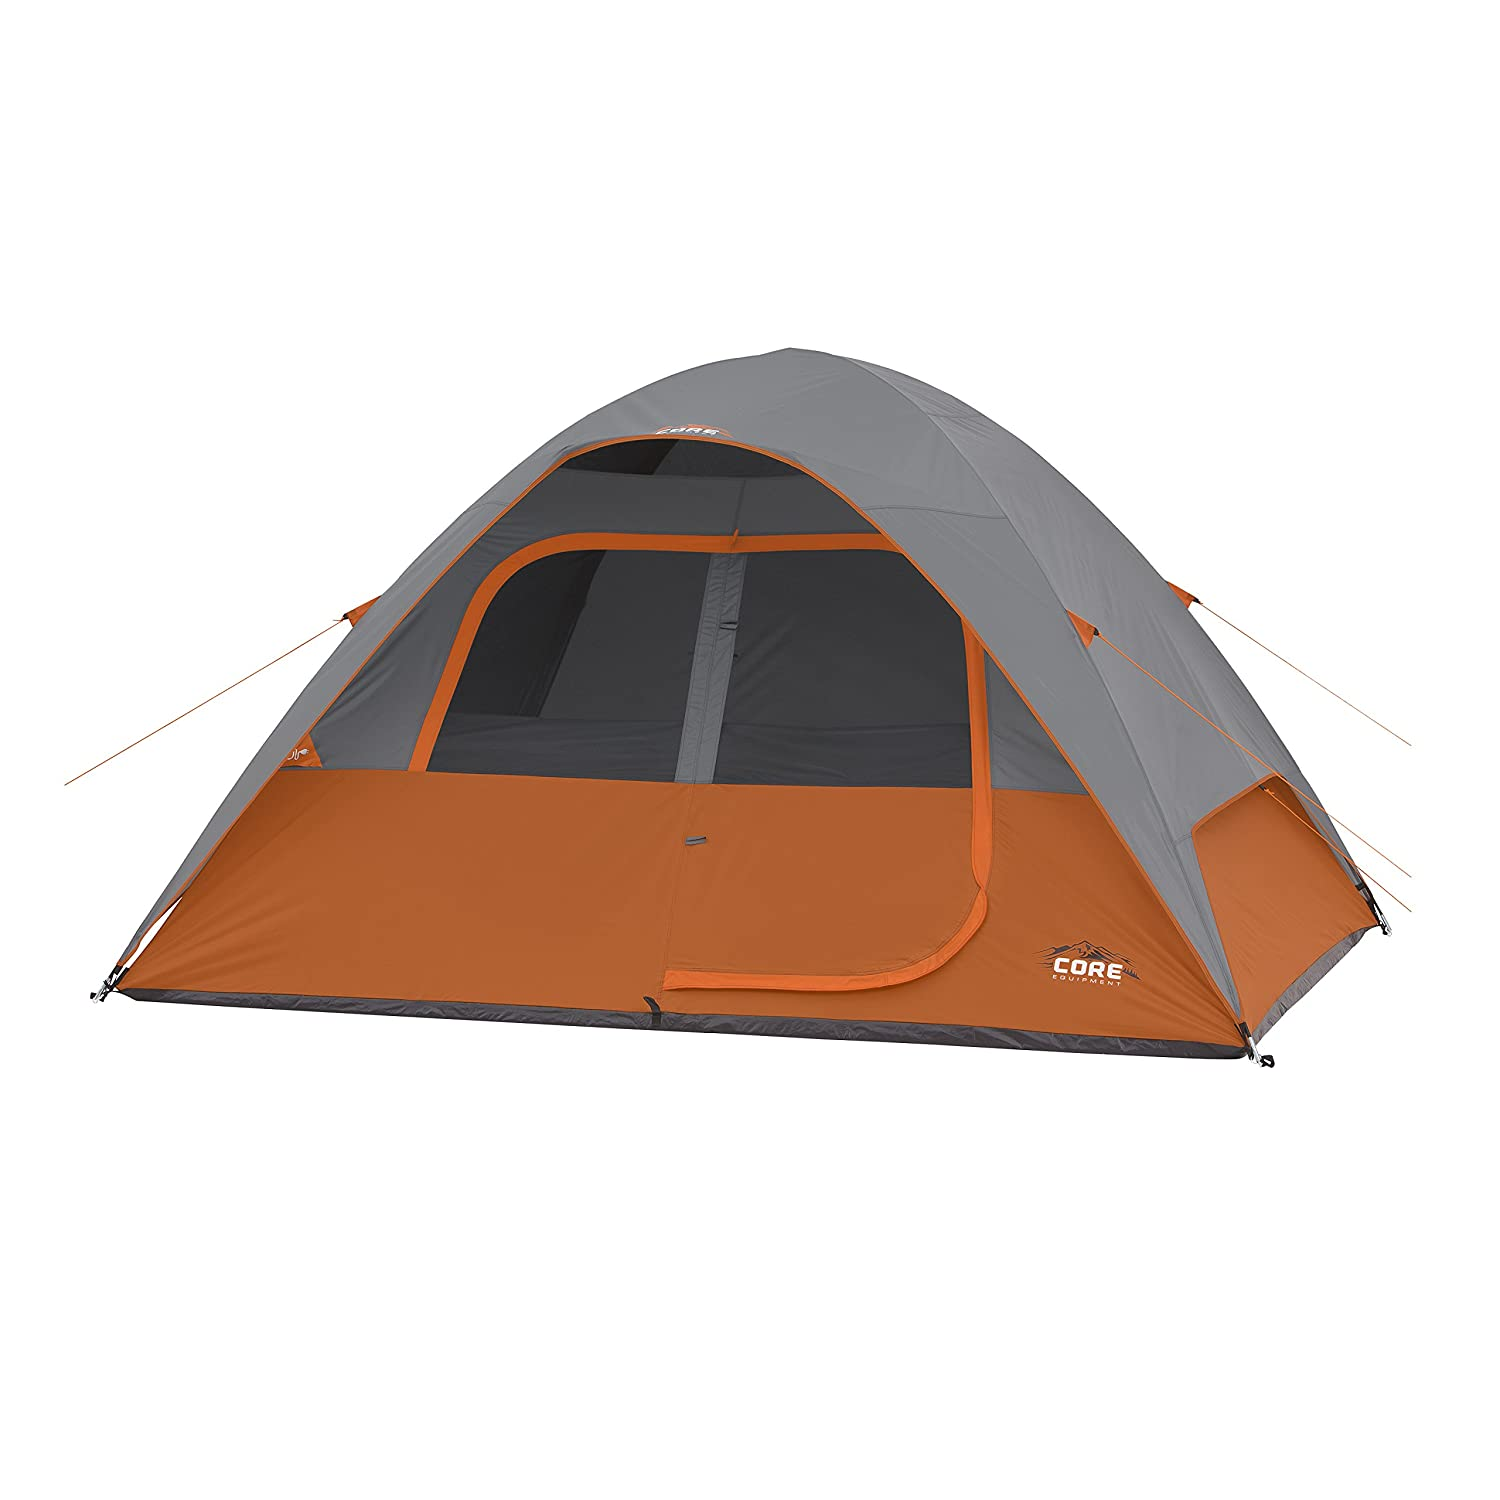 CORE 6 Person Instant Cabin Tent (11' x 9), Instant Tents Review